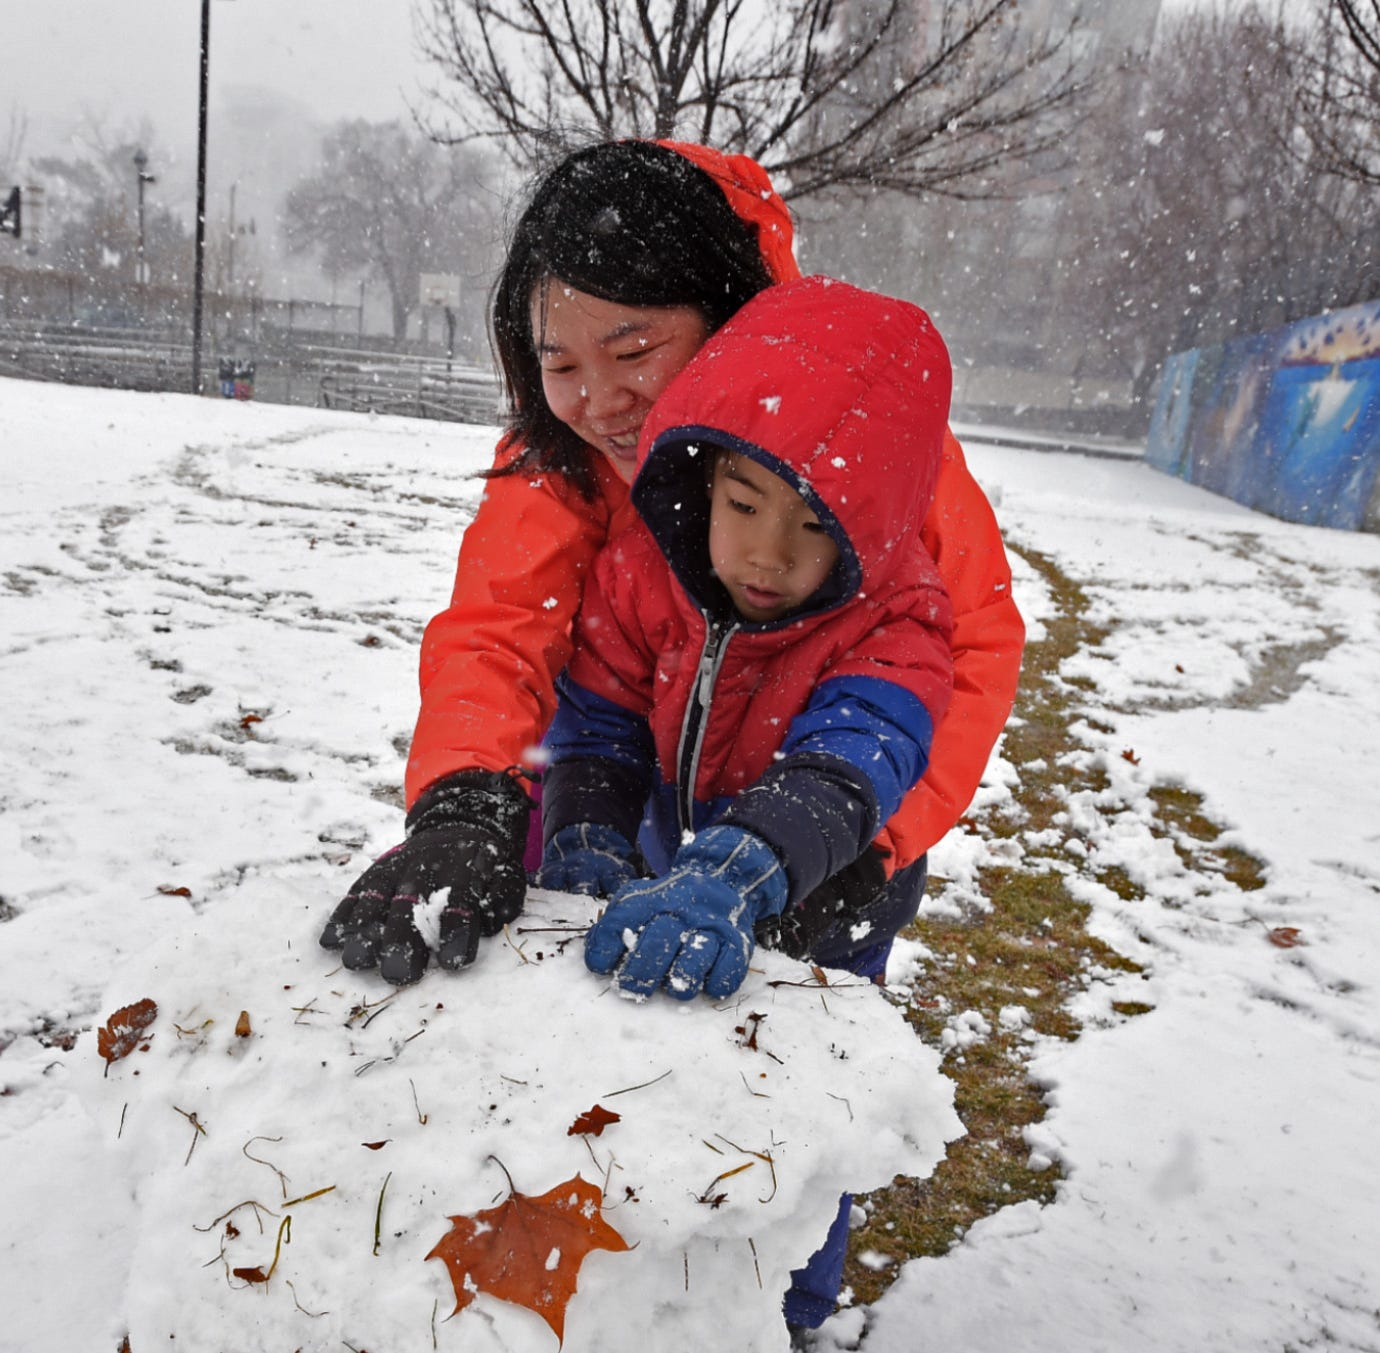 UPDATE: Forecasters say snow showers will continue throughout the day Friday